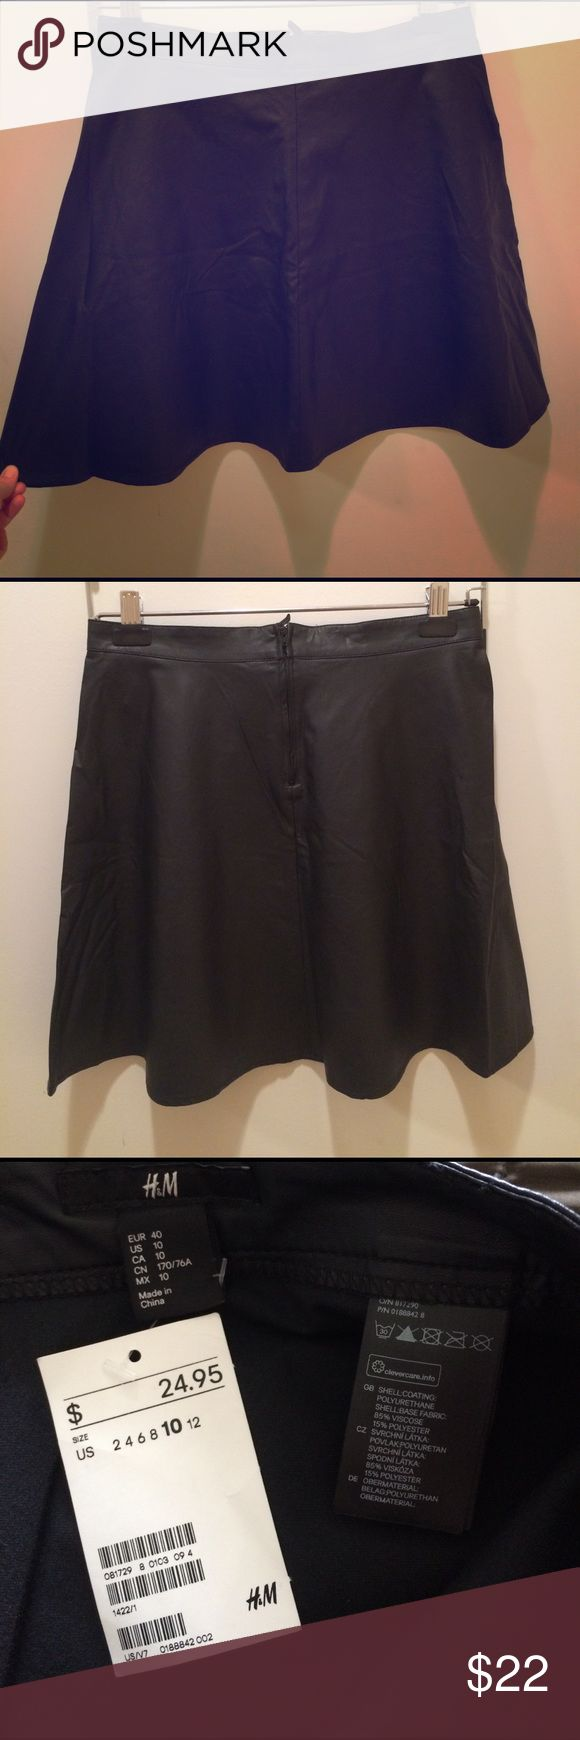 NEW H&M black skater skirt faux leather 10 Super cute skater skirt size 10 H&M Skirts Circle & Skater